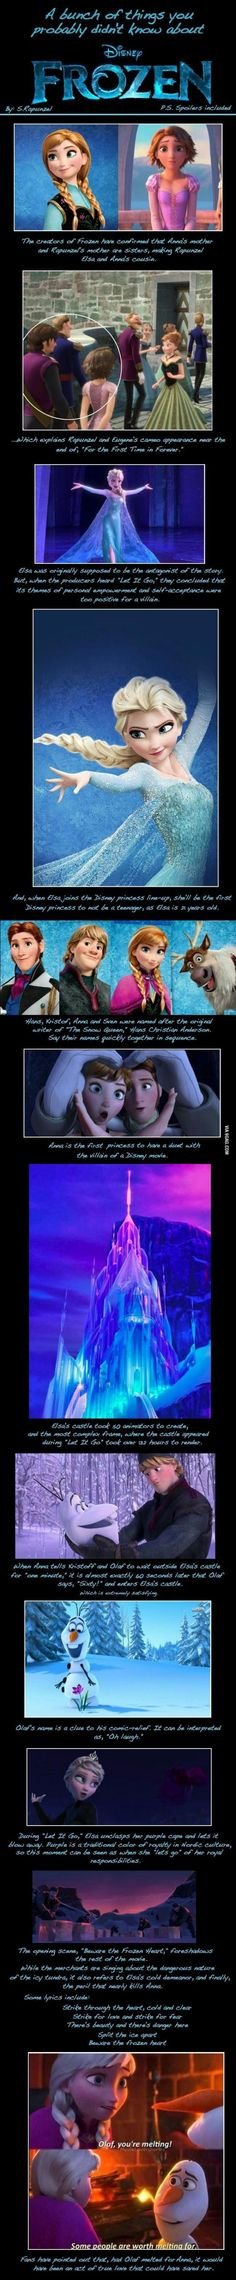 Some stuff about Frozen that you probably didn't know | DailyFailCenter